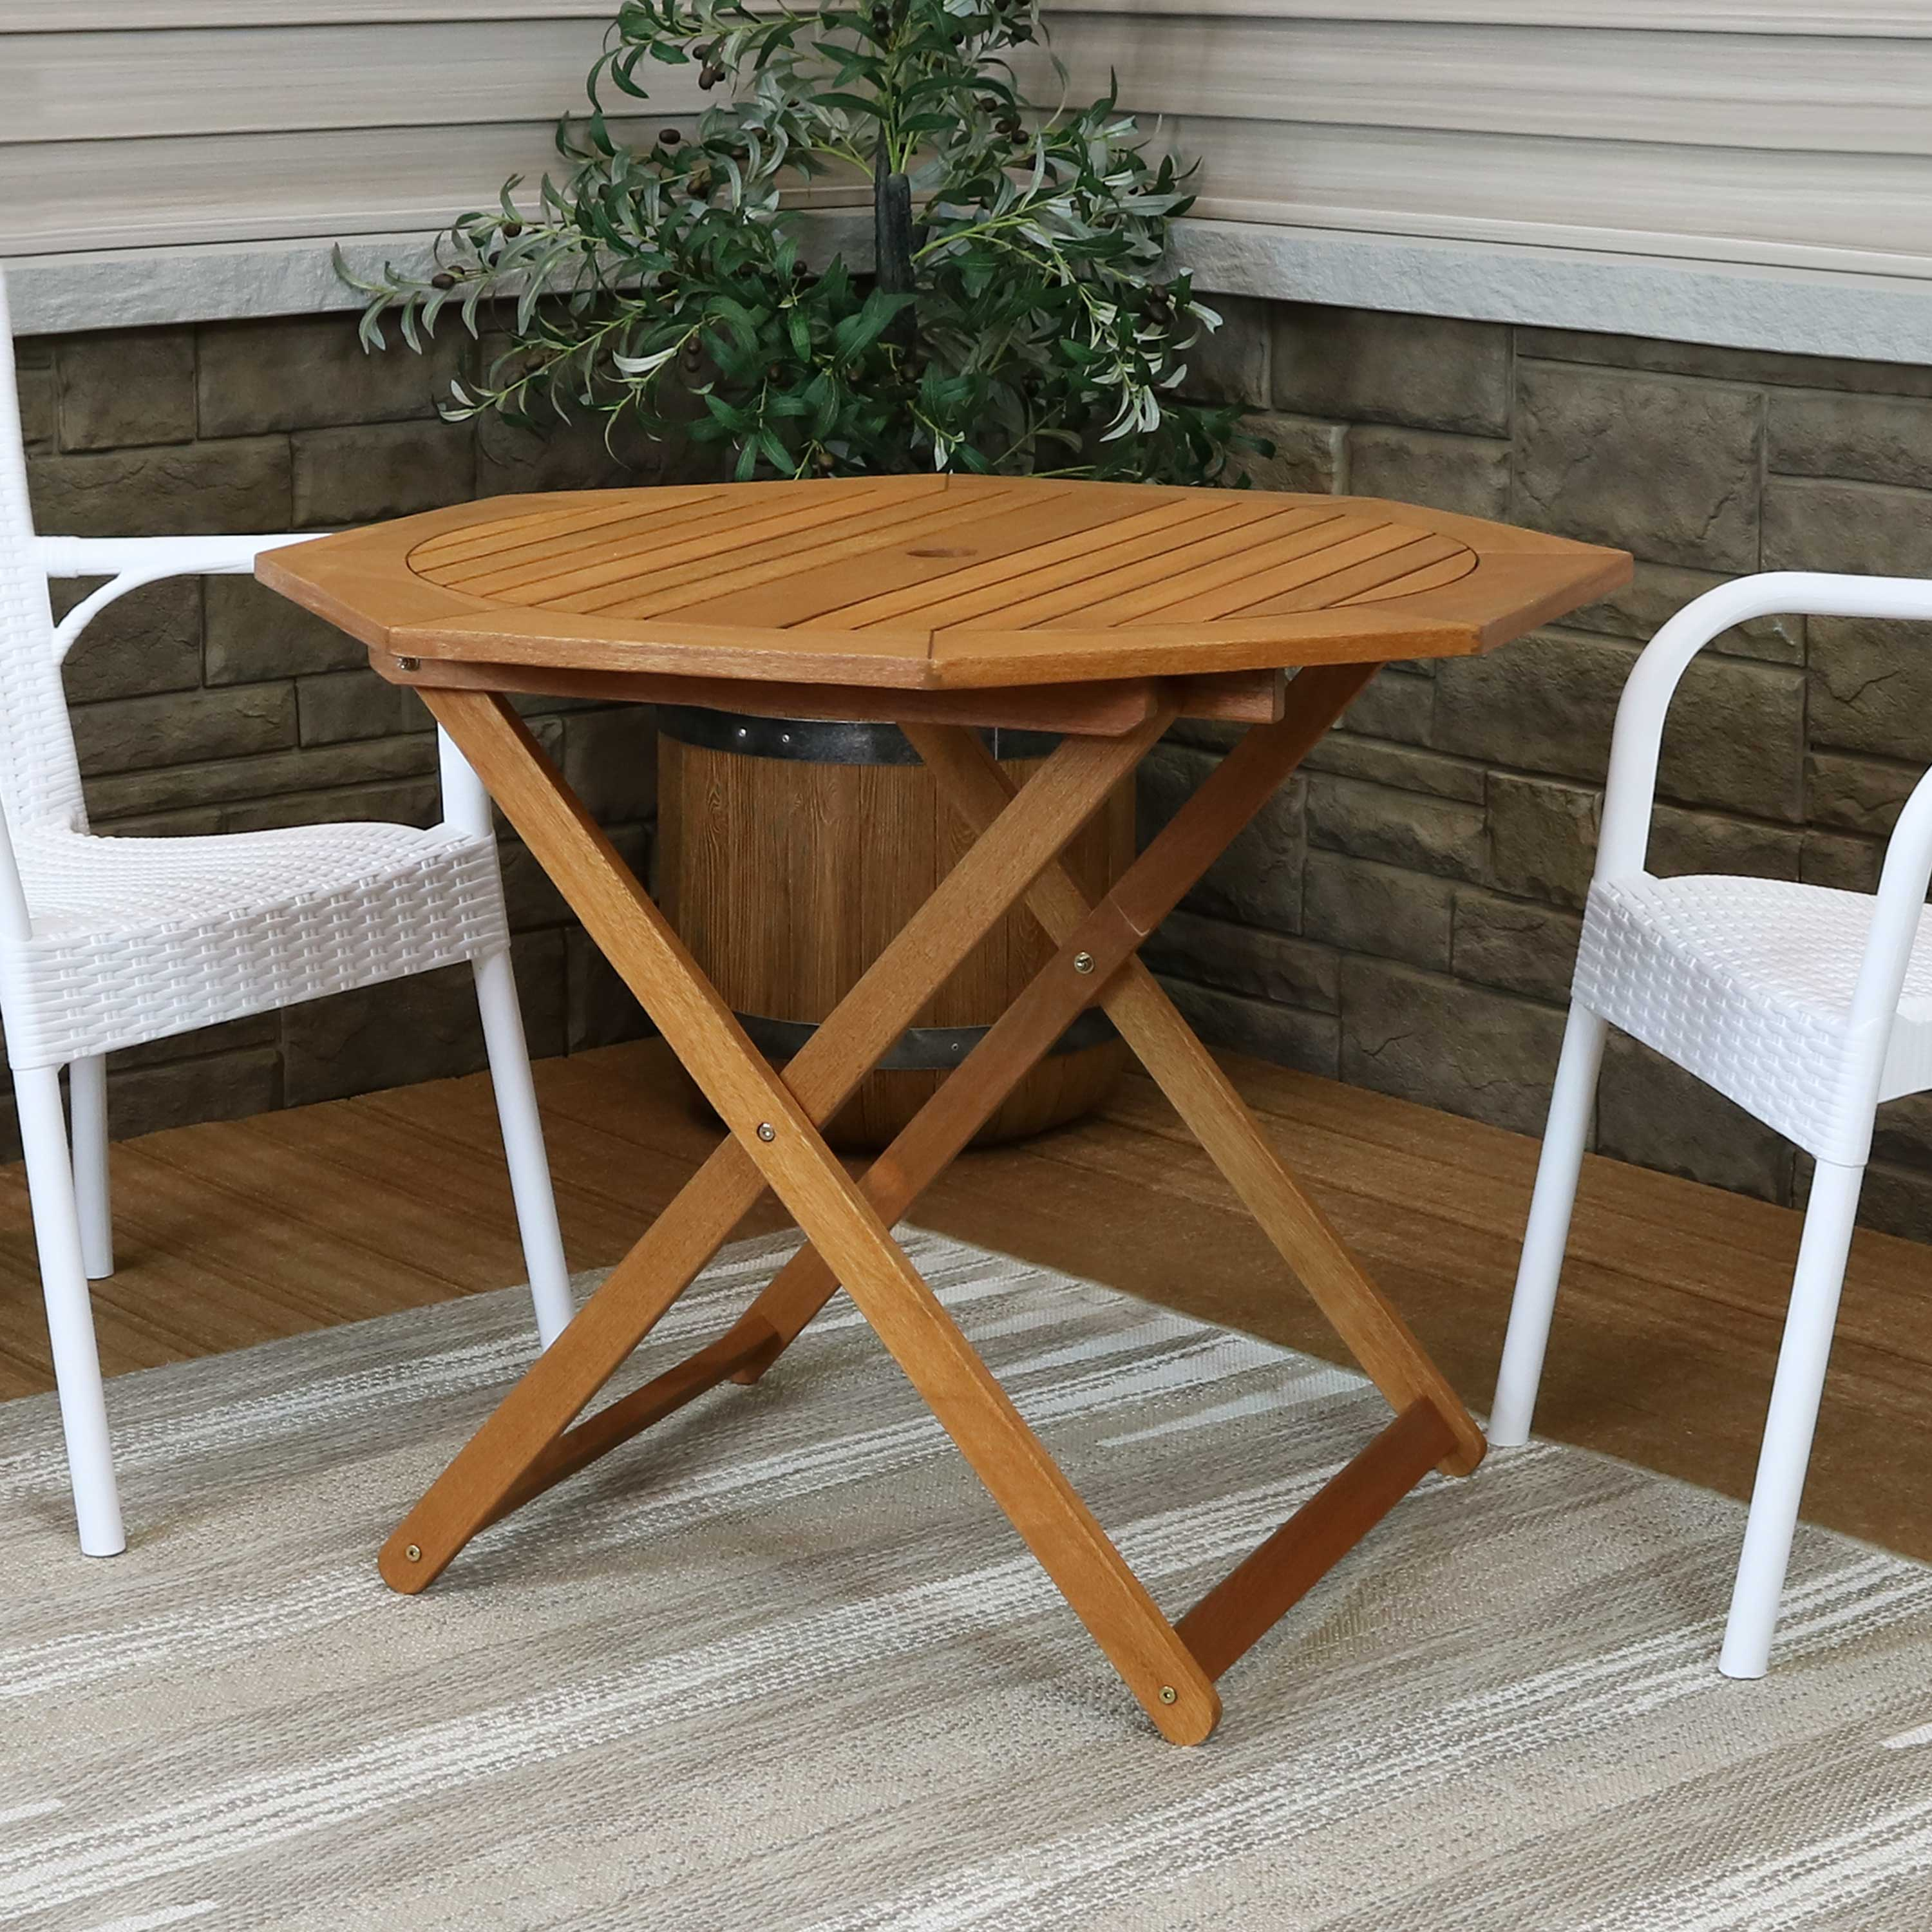 Ideal For The Patio Perfect For Camping And Dining Front Porch Or Garden Sunnydaze Meranti Wood Folding Round Bistro Table With Teak Oil Finish 27 5 Inch Compact Sturdy Outdoor Portable Table Patio Furniture